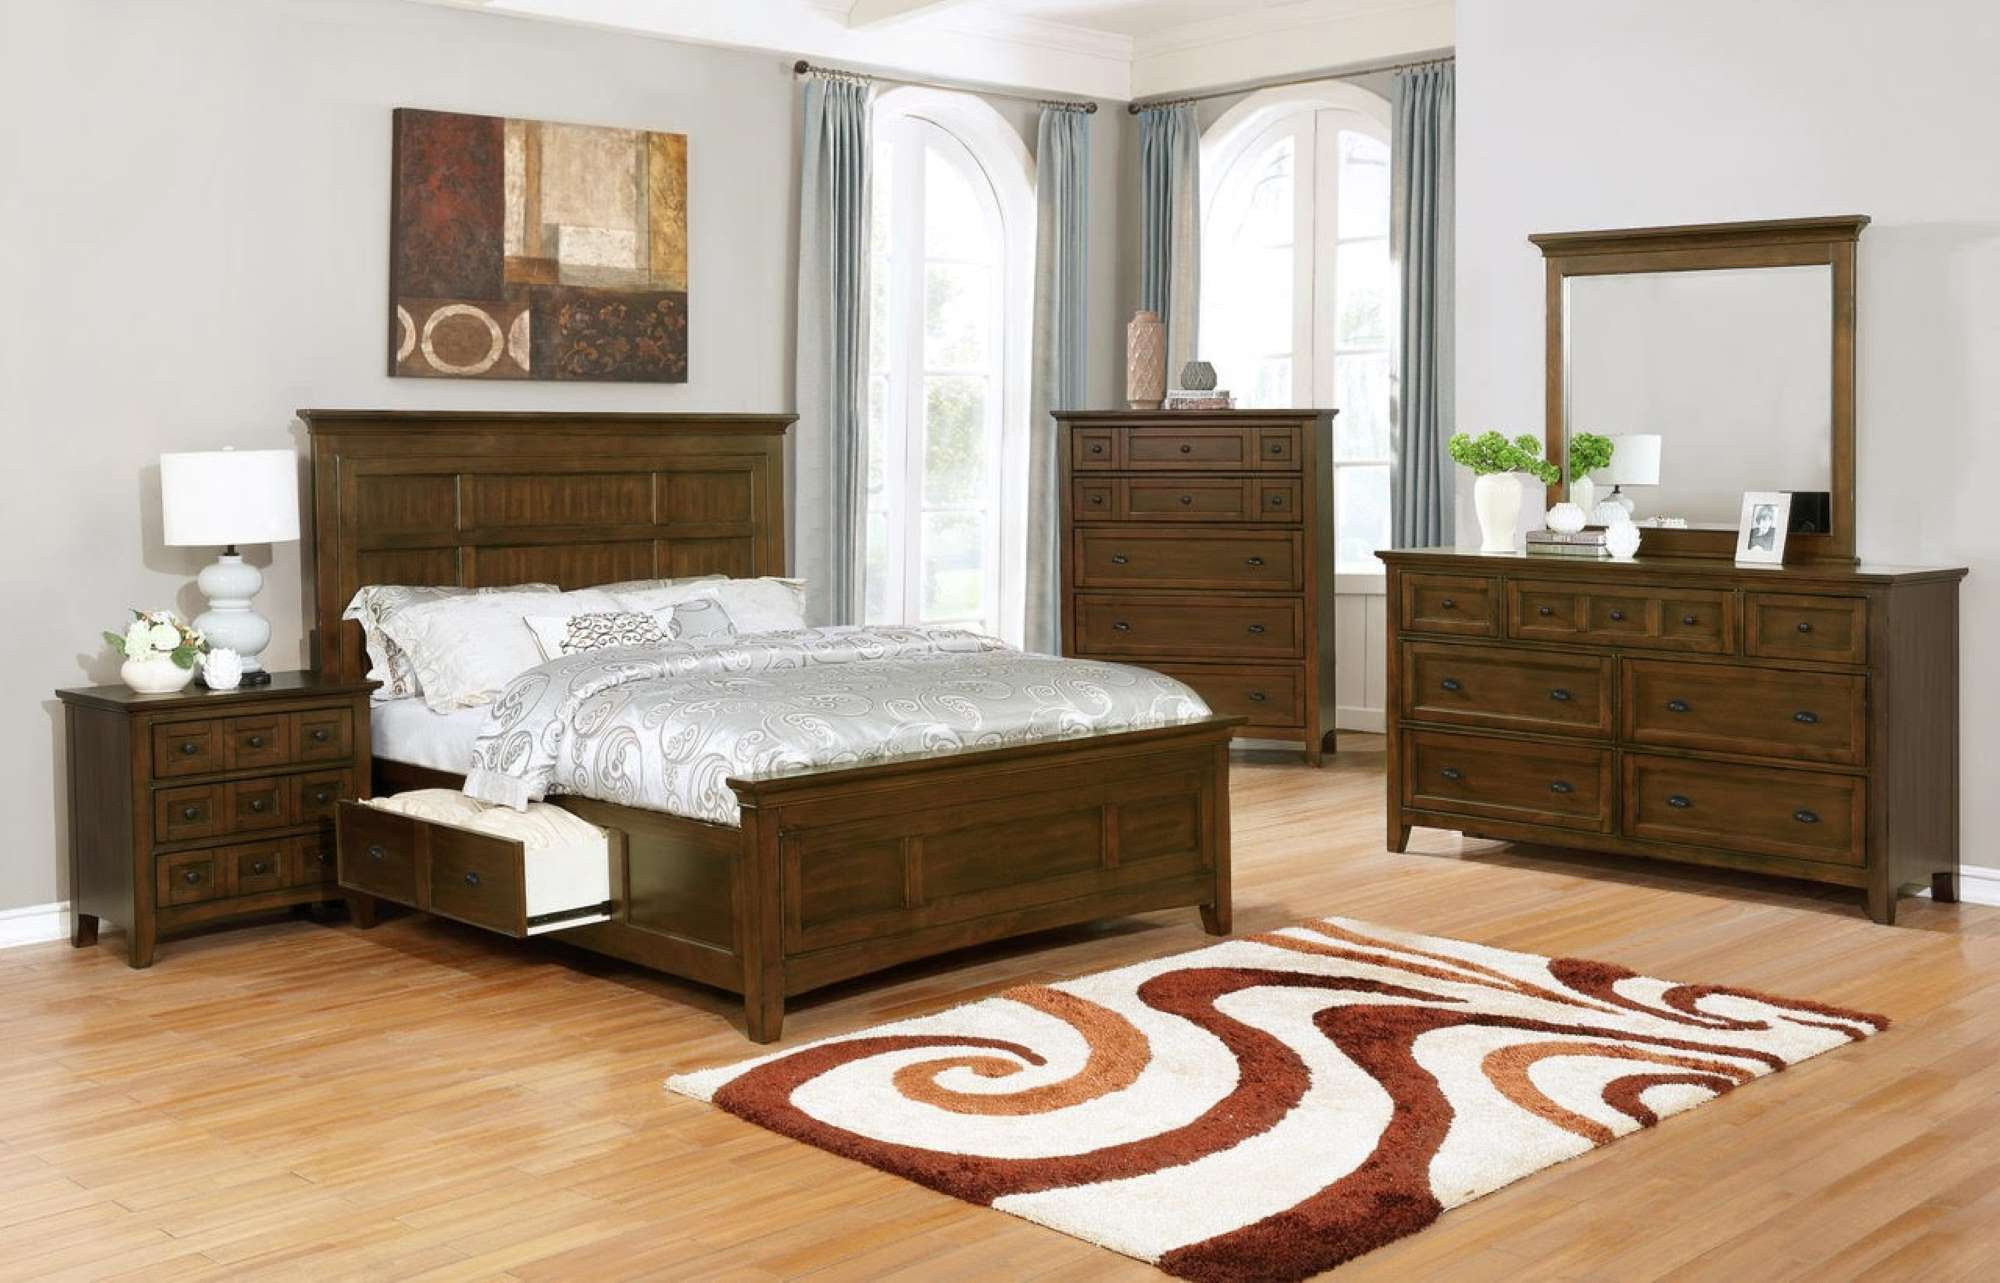 BR020 Ethan Brown Bedroom Set